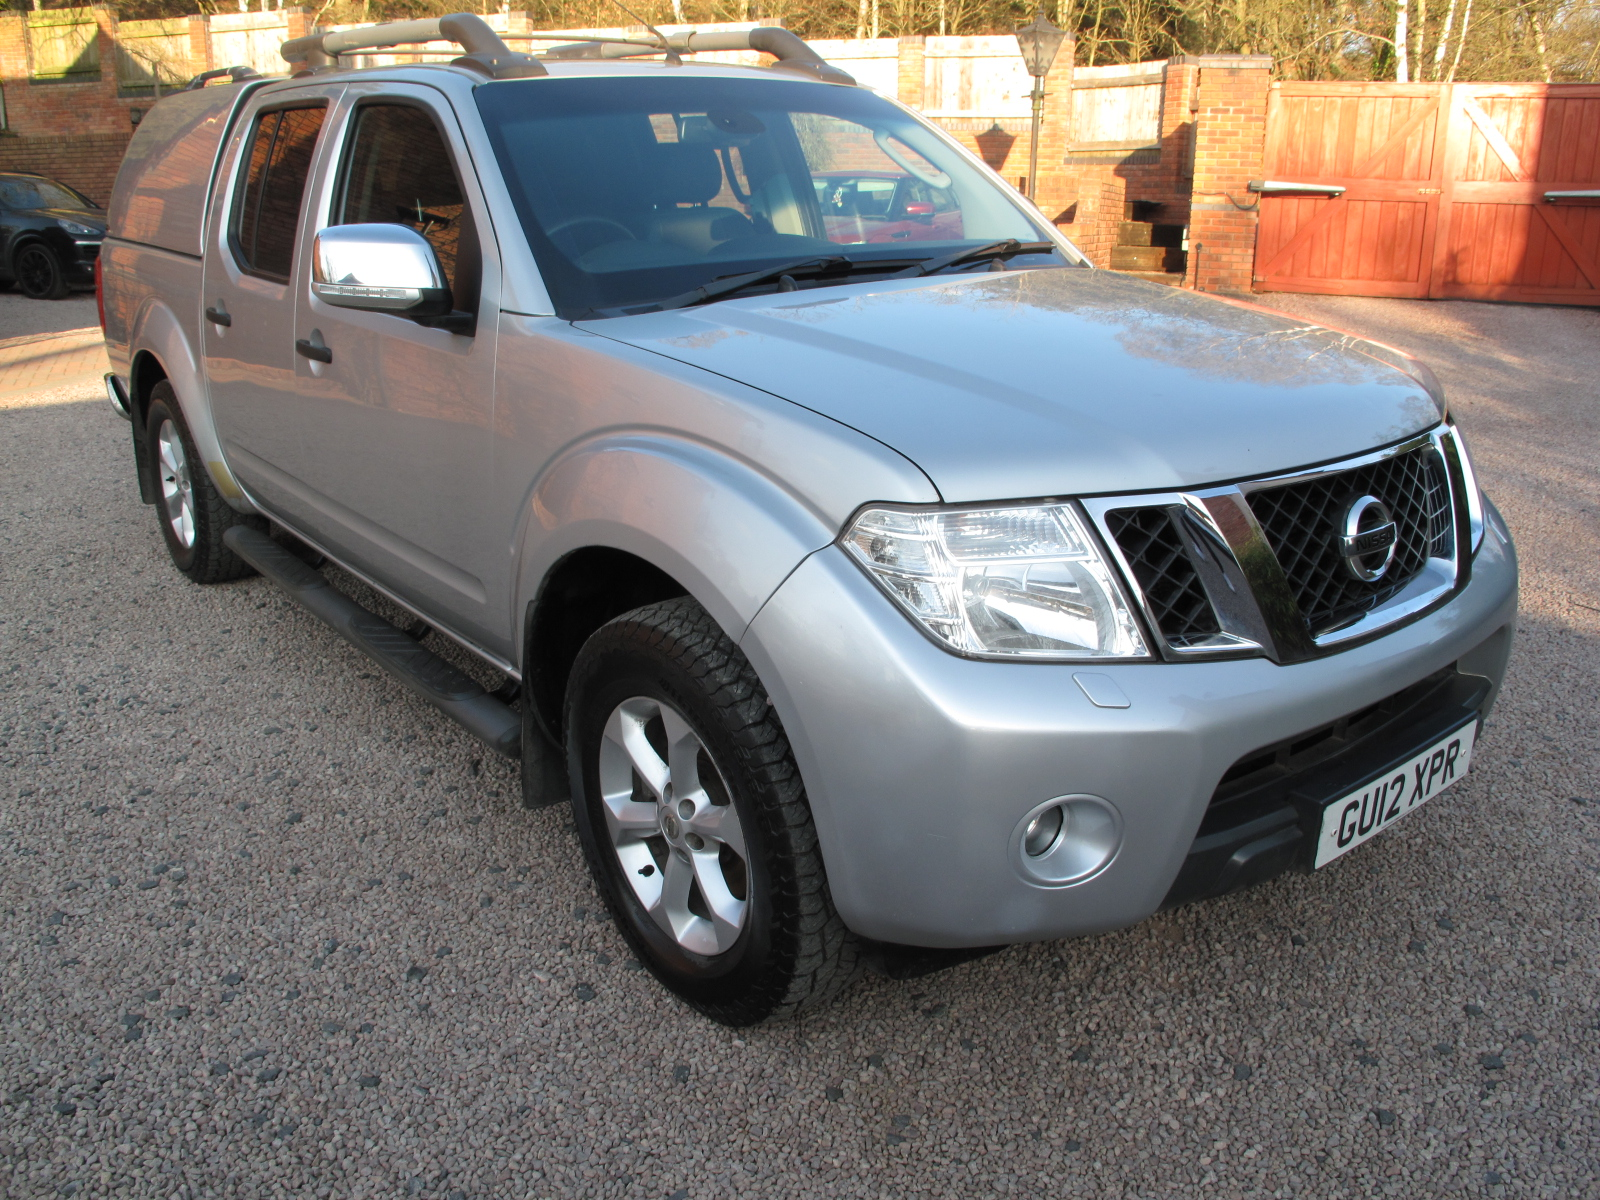 2012 12 Nissan Navara 2.5 dCi Tekna Premium Connect Double Cab Pickup, ONLY USED AS A CAR! TOP OF THE RANGE! PRISTINE! NO VAT!